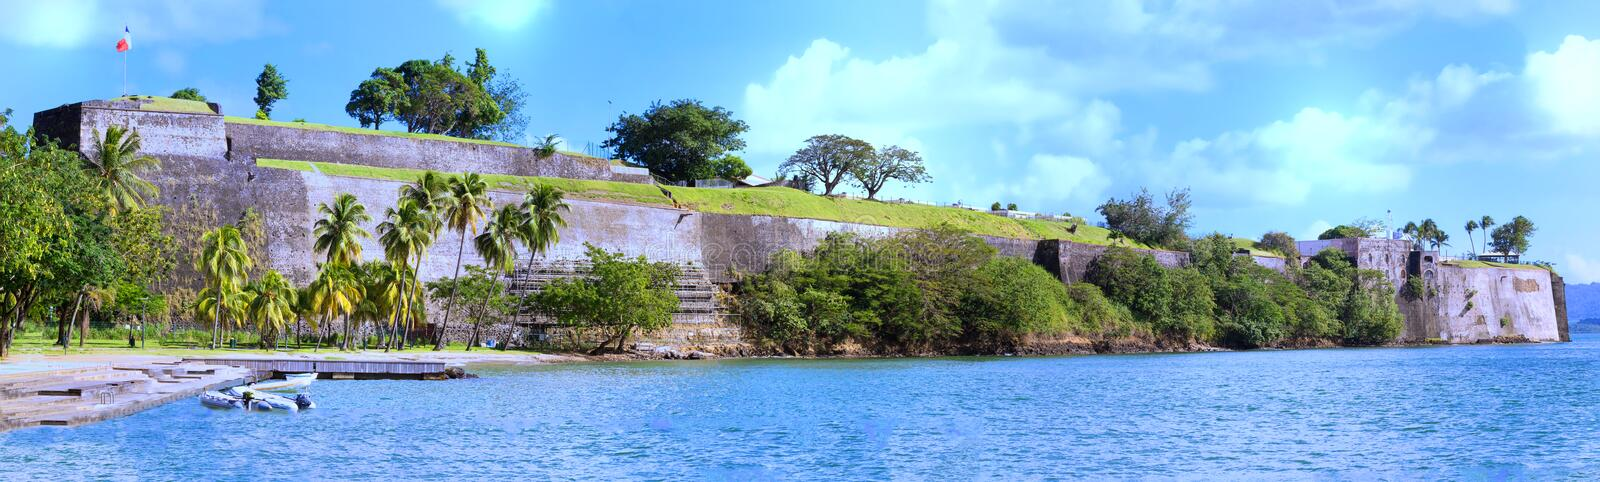 The Fort Saint Louis, Martinique island , French West Indies. royalty free stock photography